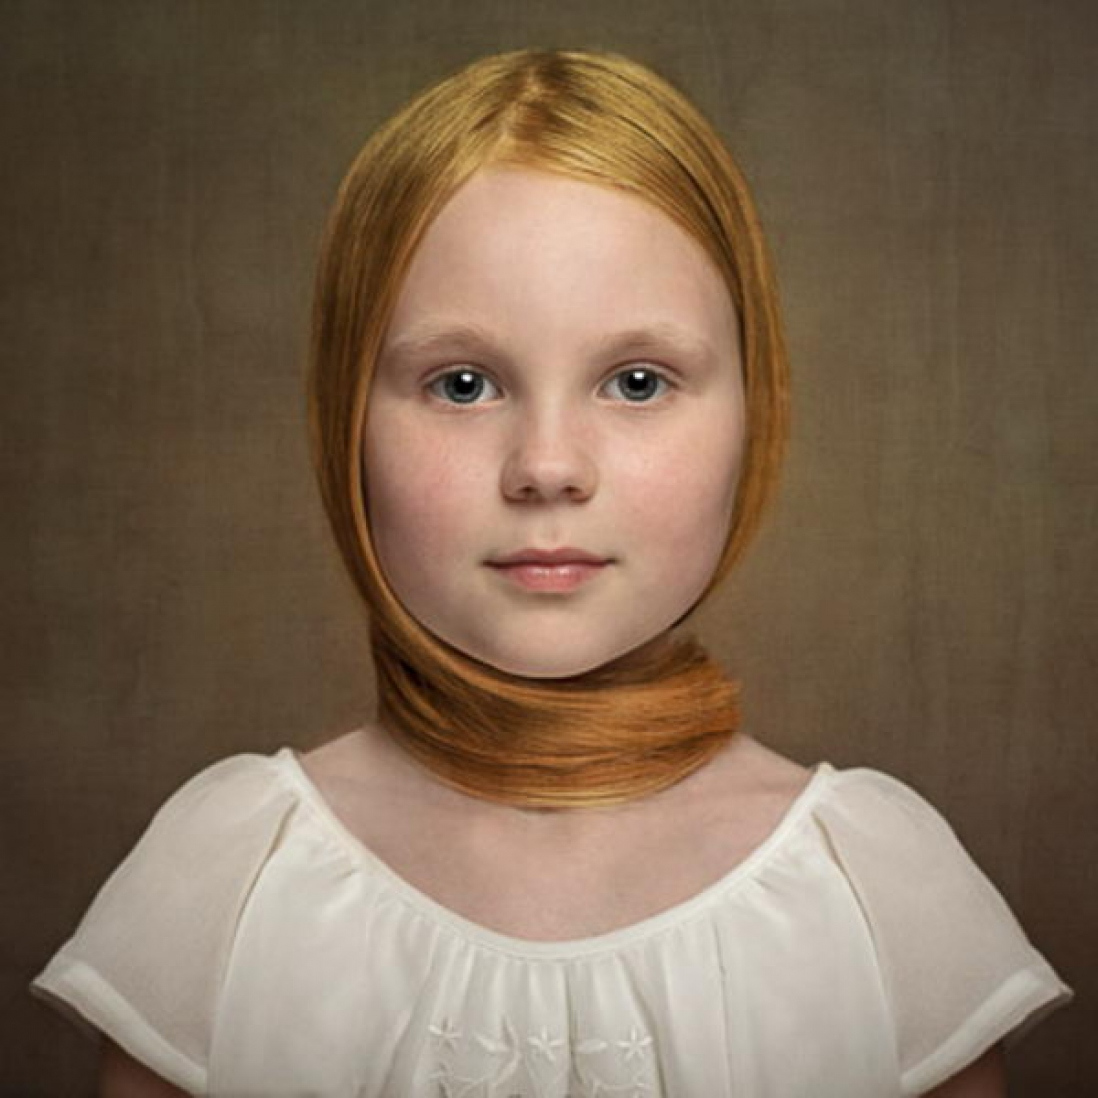 Photograph of young girl wearing simple white top, with orange-red hair combed down and wrapped around neck as ornament.